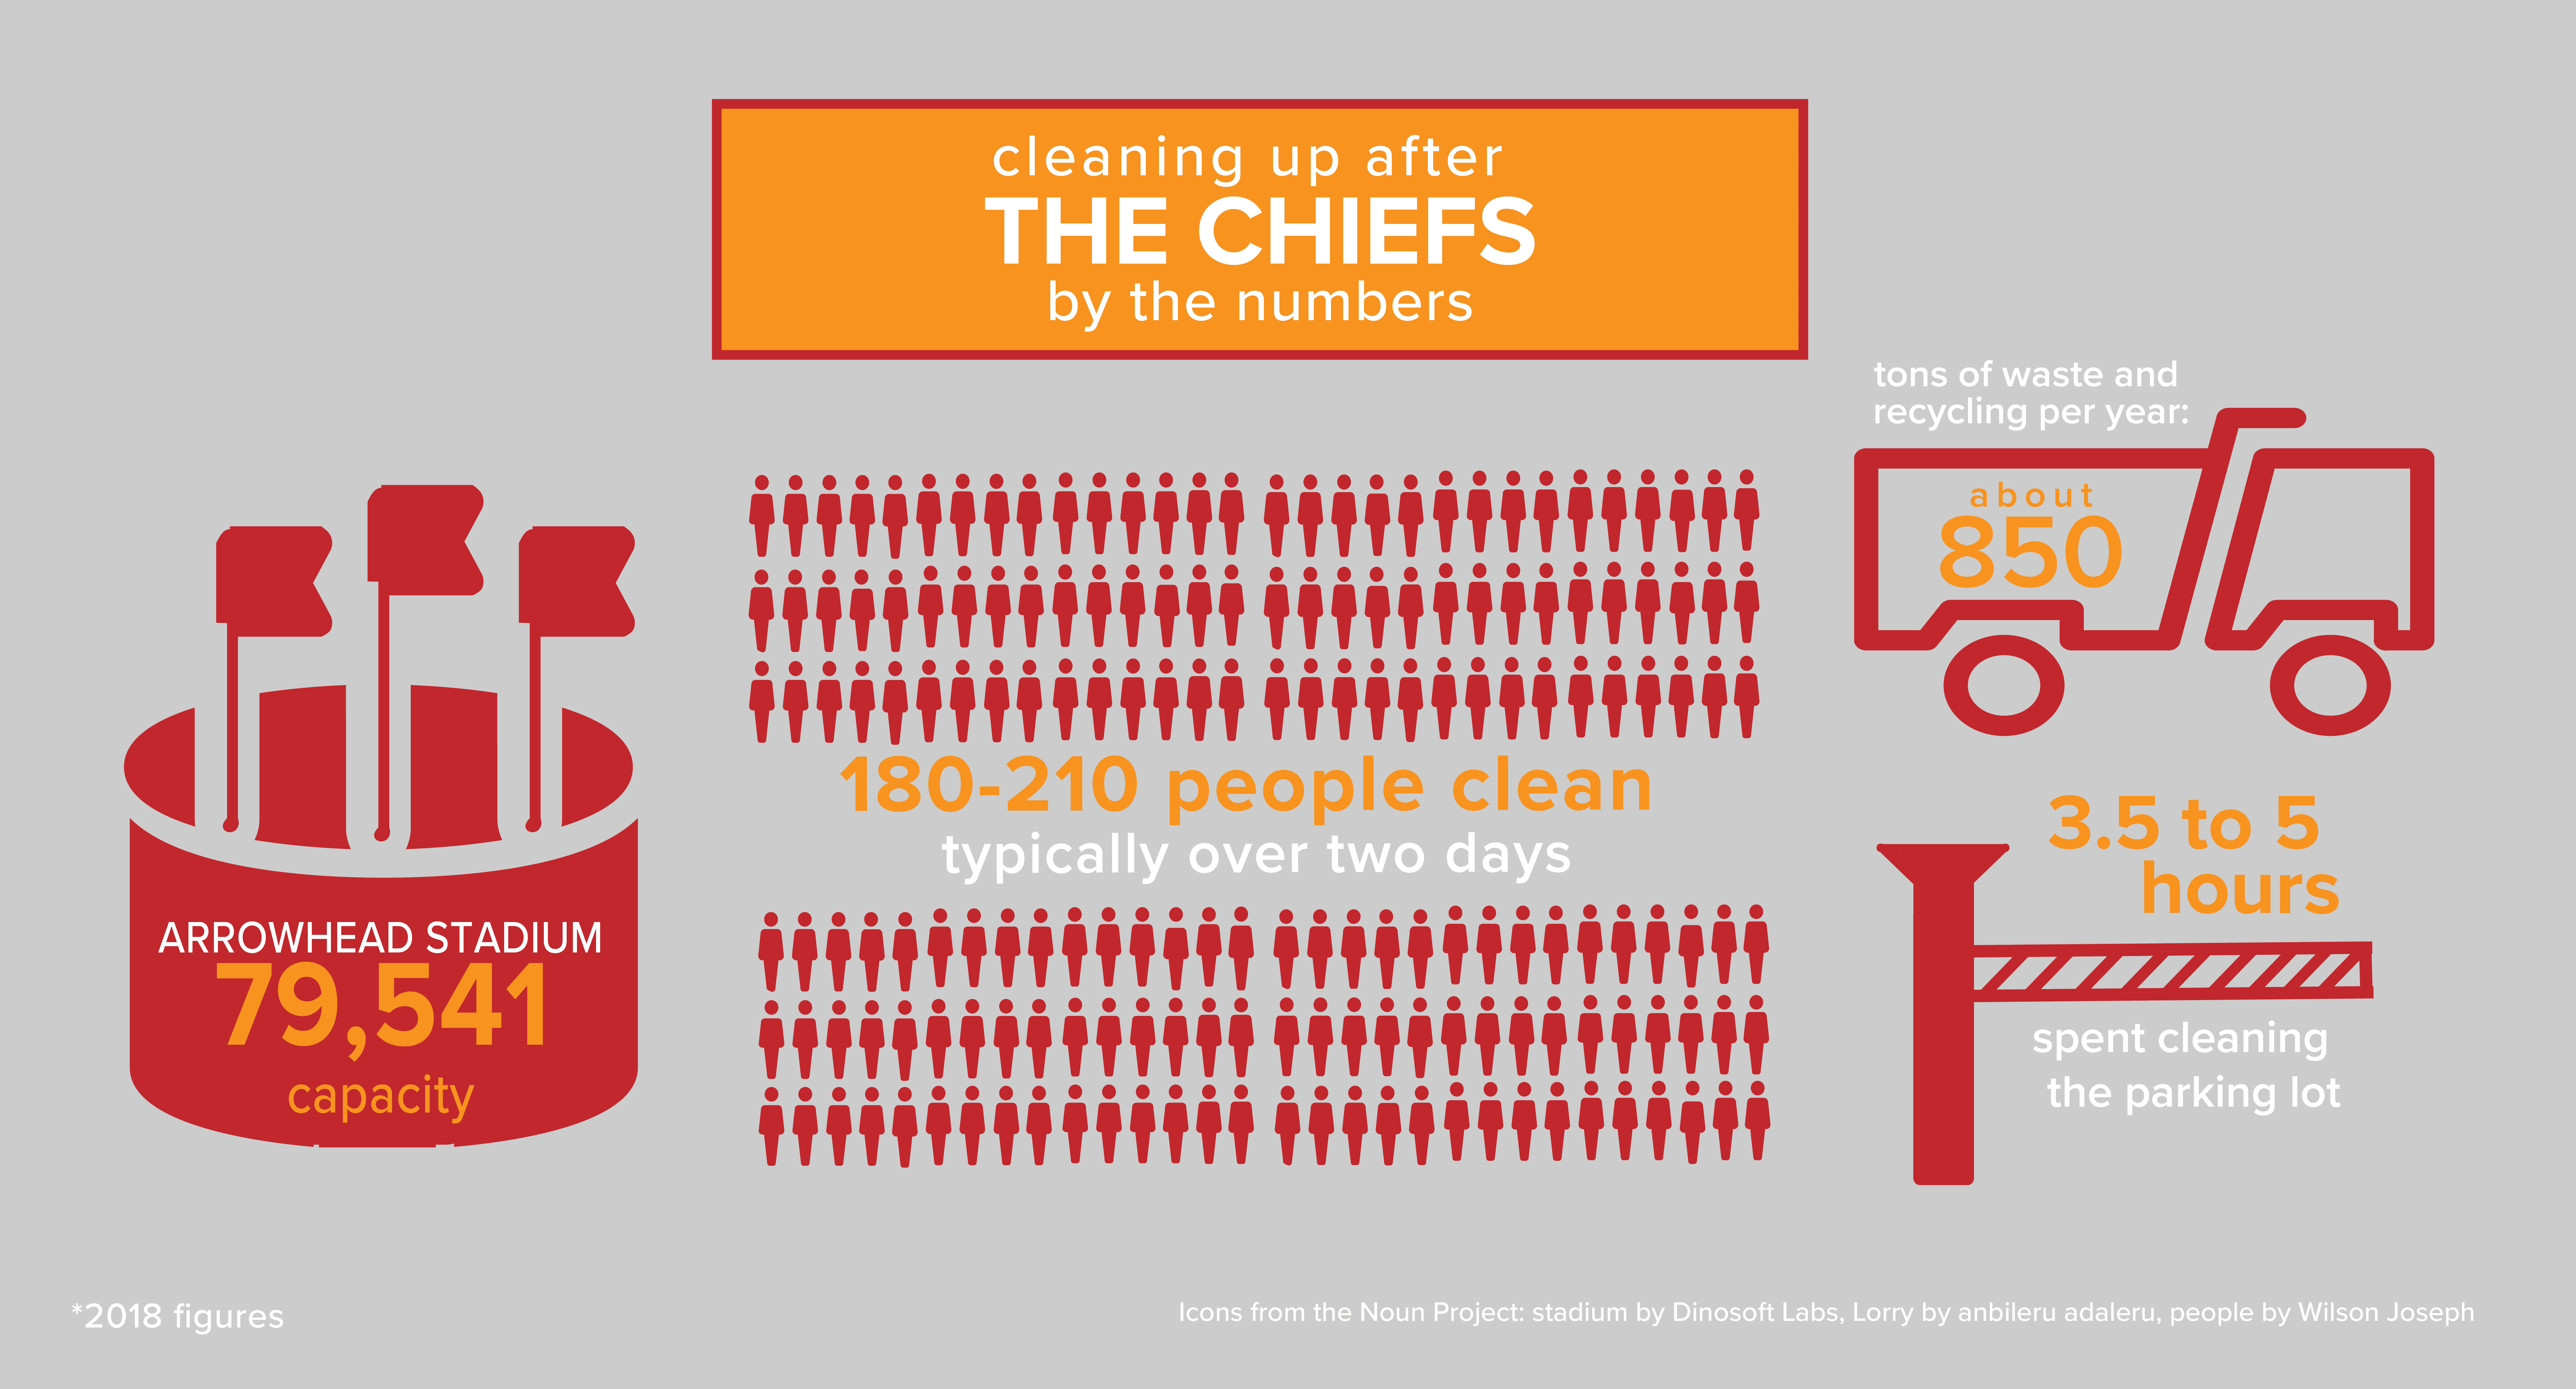 Cleaning up after The Chiefs by the numbers - infographic showing that Arrowhead stadium has a 79,541 person capacity, that 180-210 people clean, typically over two days and that about 850 tons of waste and recycling per year are removed. 3.5 to 5 hours are spent cleaning the parking lot. 2018 figures.